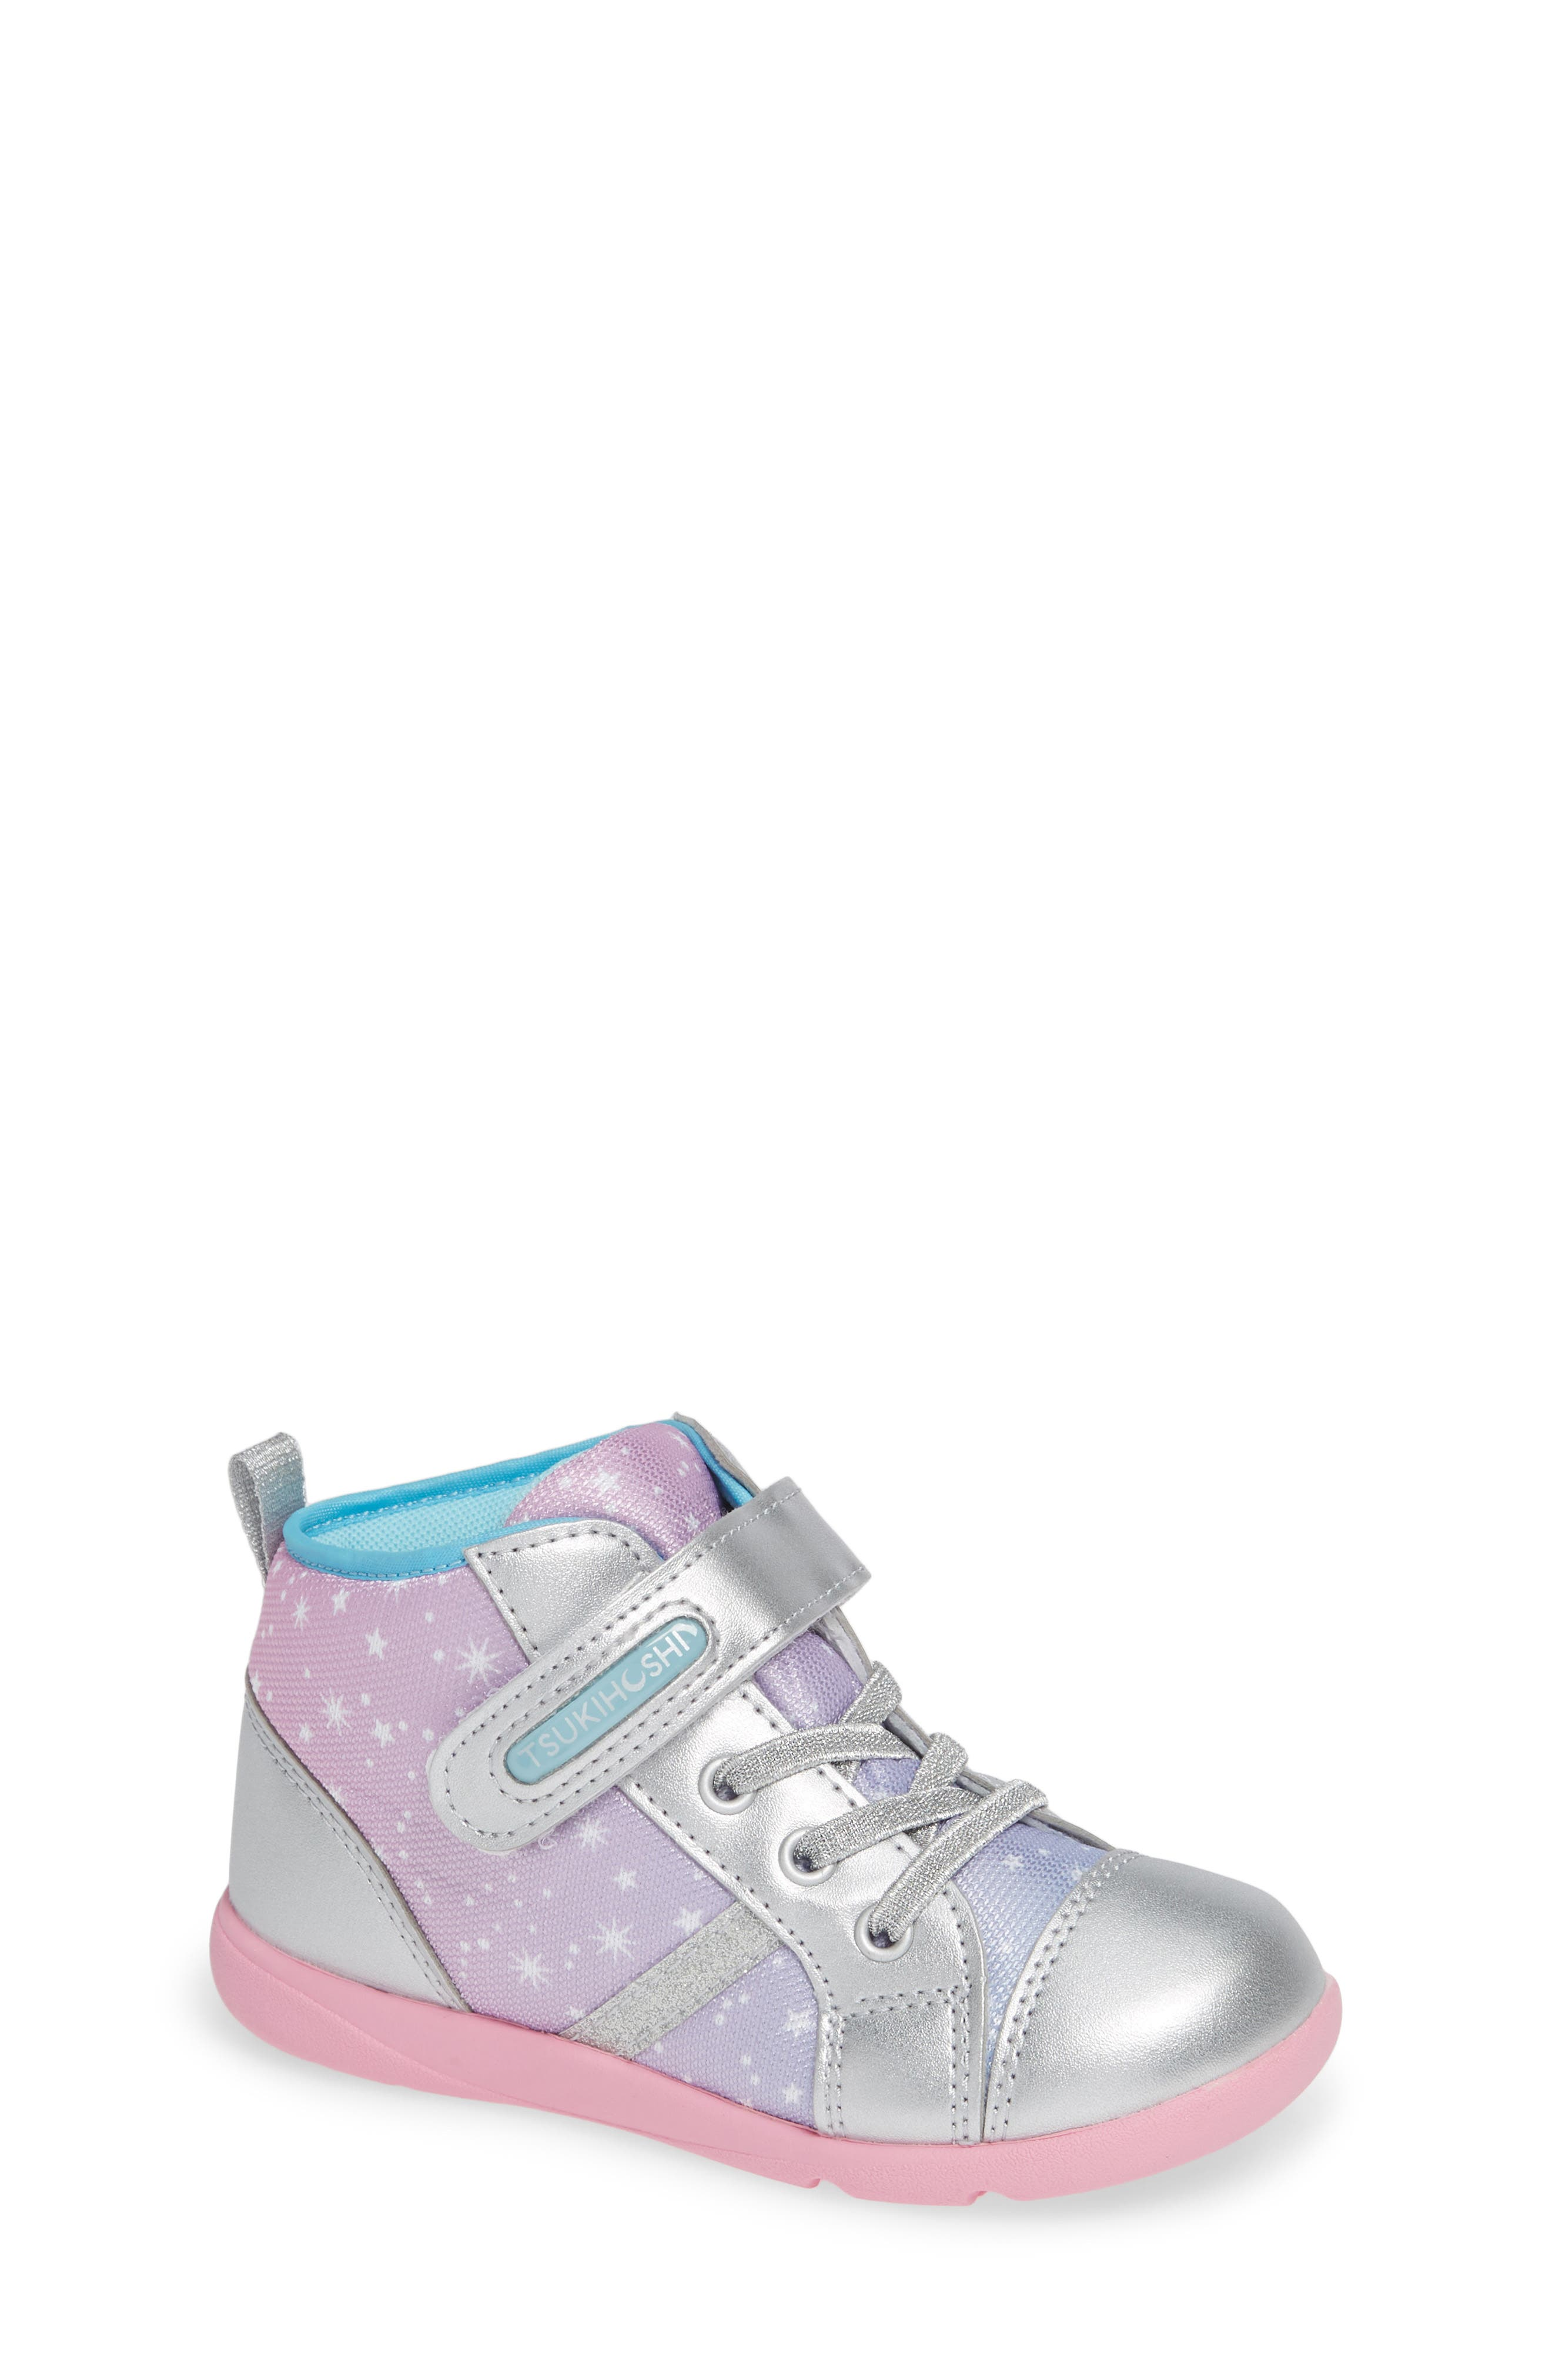 Star Washable Sneaker,                             Main thumbnail 1, color,                             SILVER/ PINK